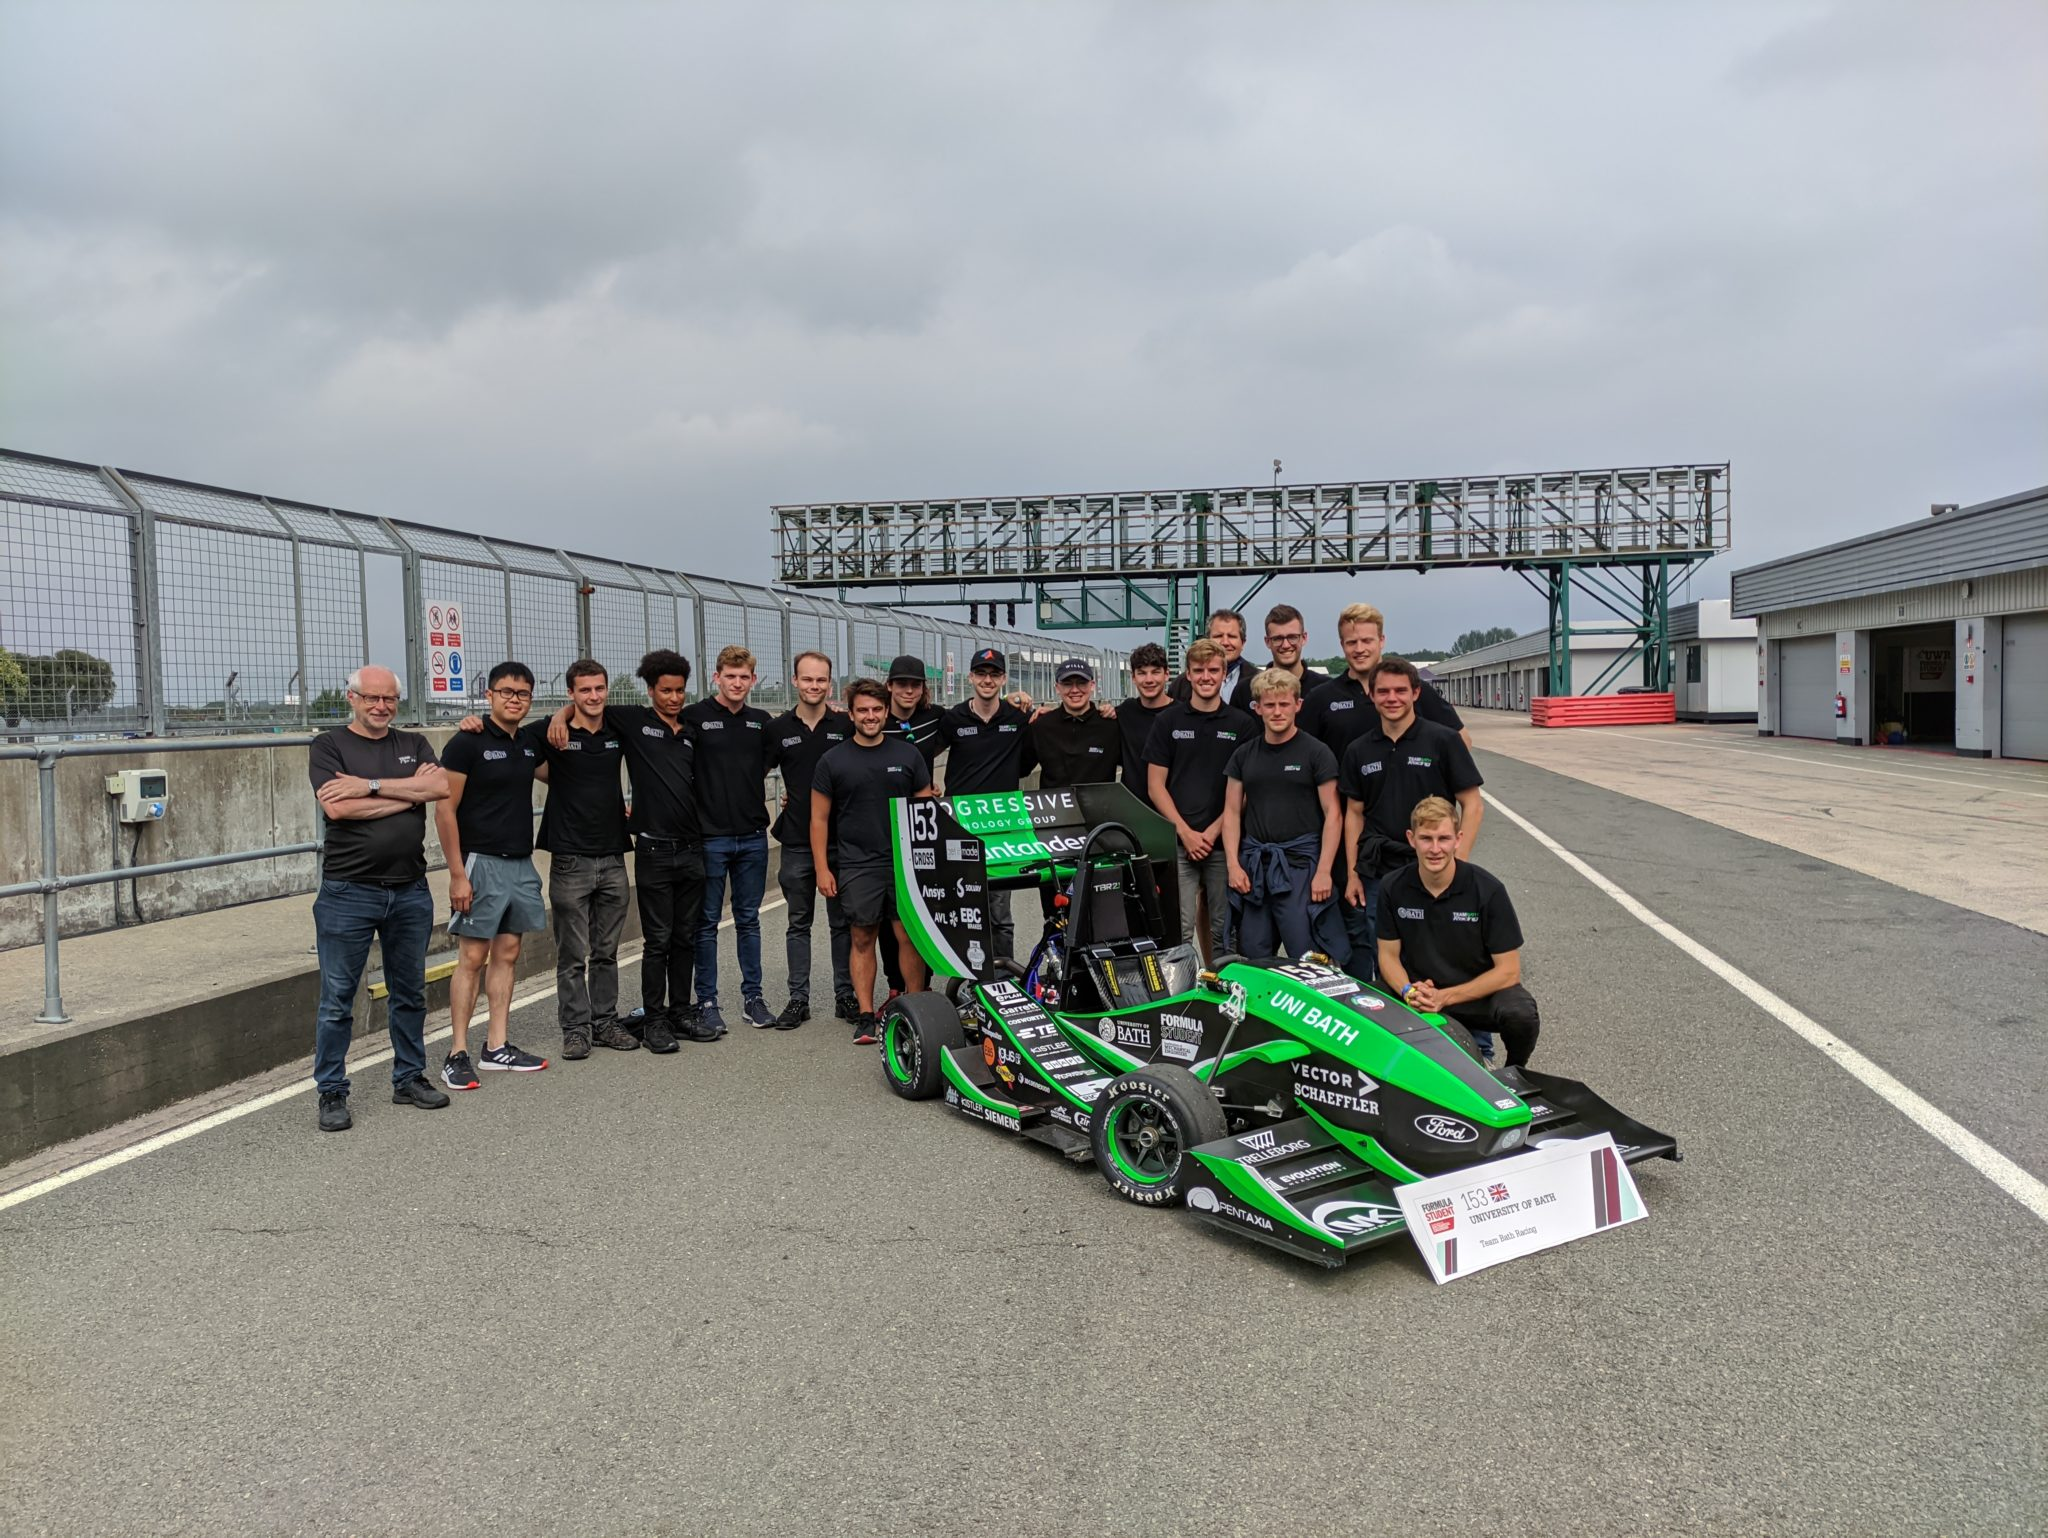 Team Bath Racing Competes in Formula Student UK 2021